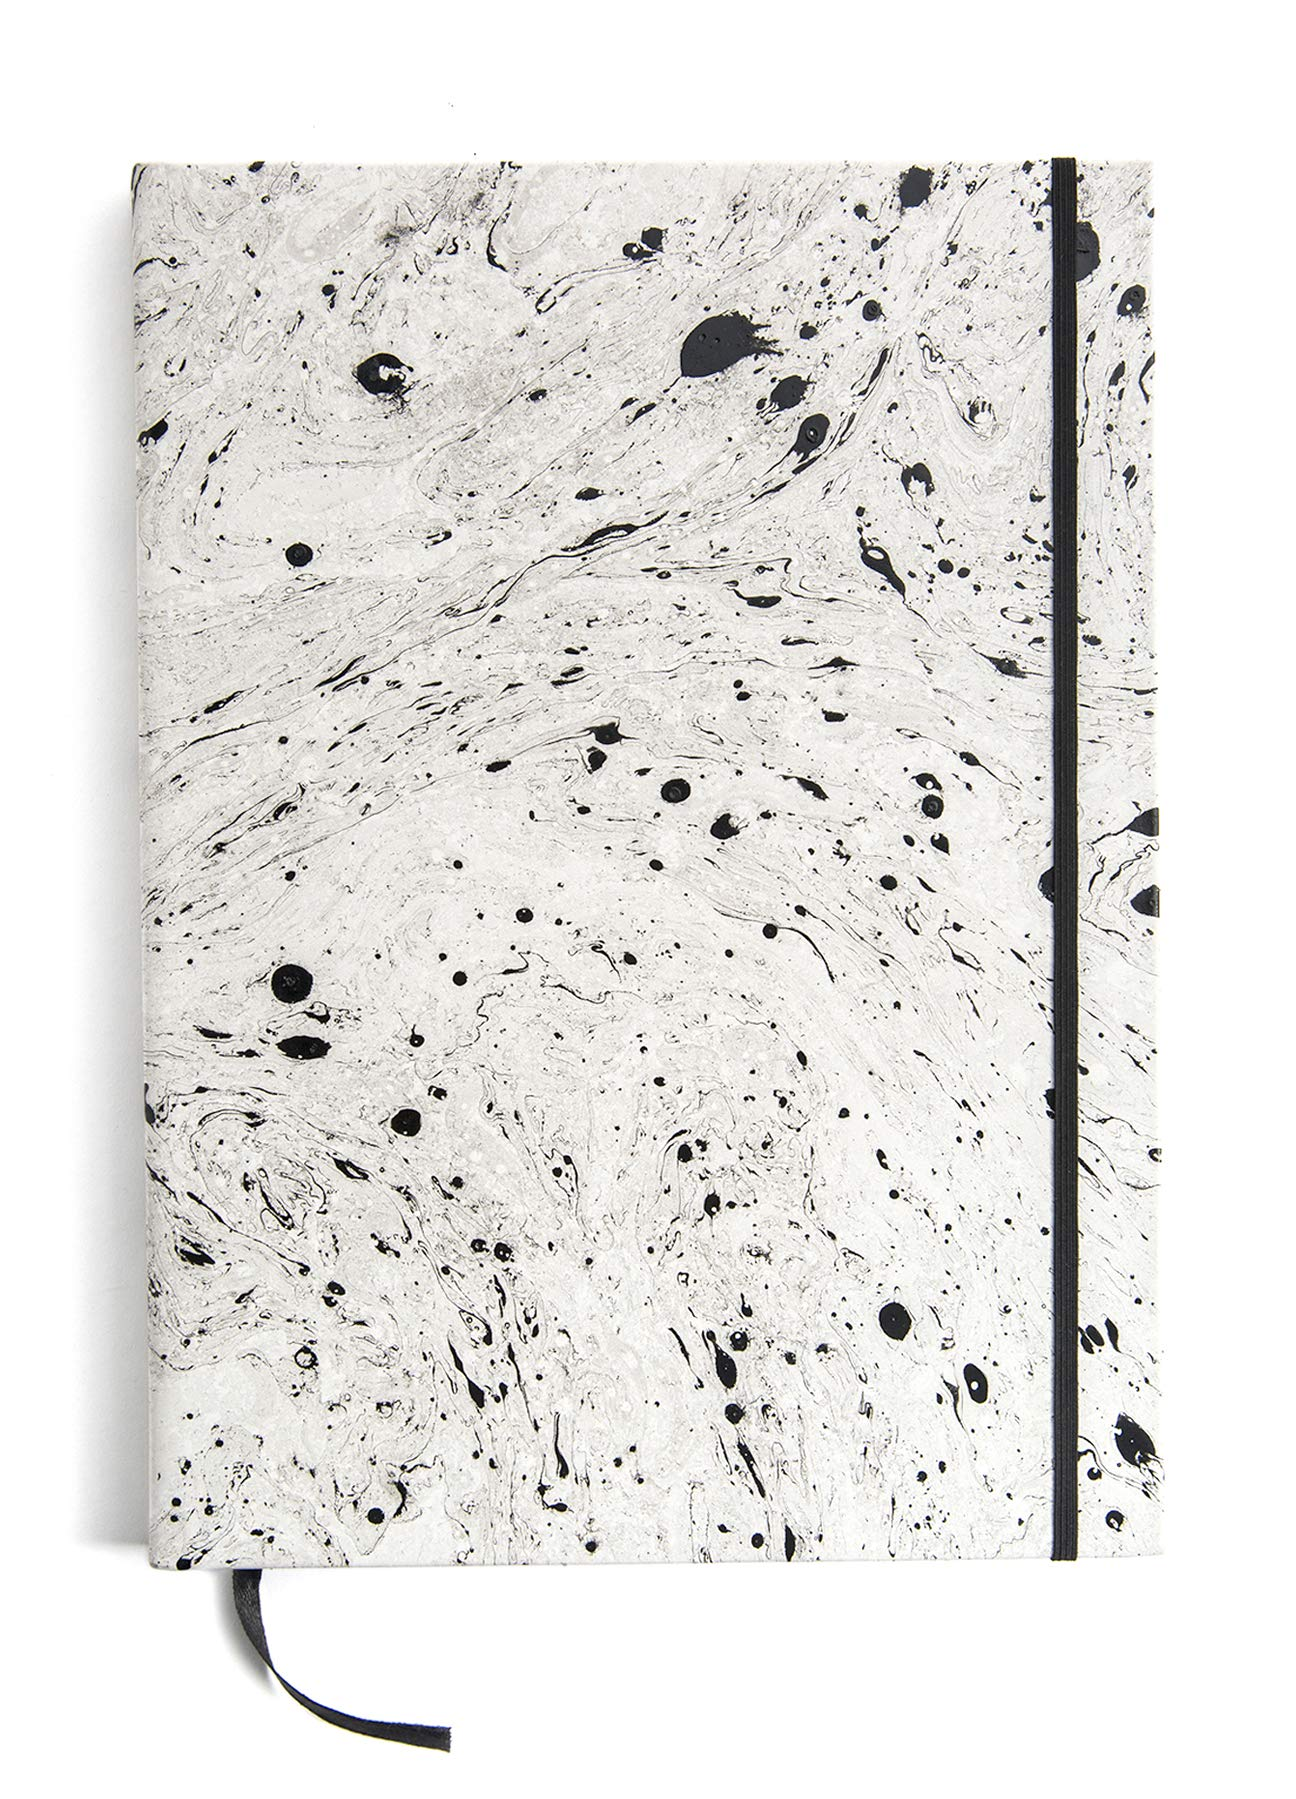 Printfresh Hardcover Leather Sketchbook, Large (9'' x 12''), Blank Drawing Journal with Elastic Closure and Satin Bookmark, 160 Pages, Hand Marbled by Printfresh